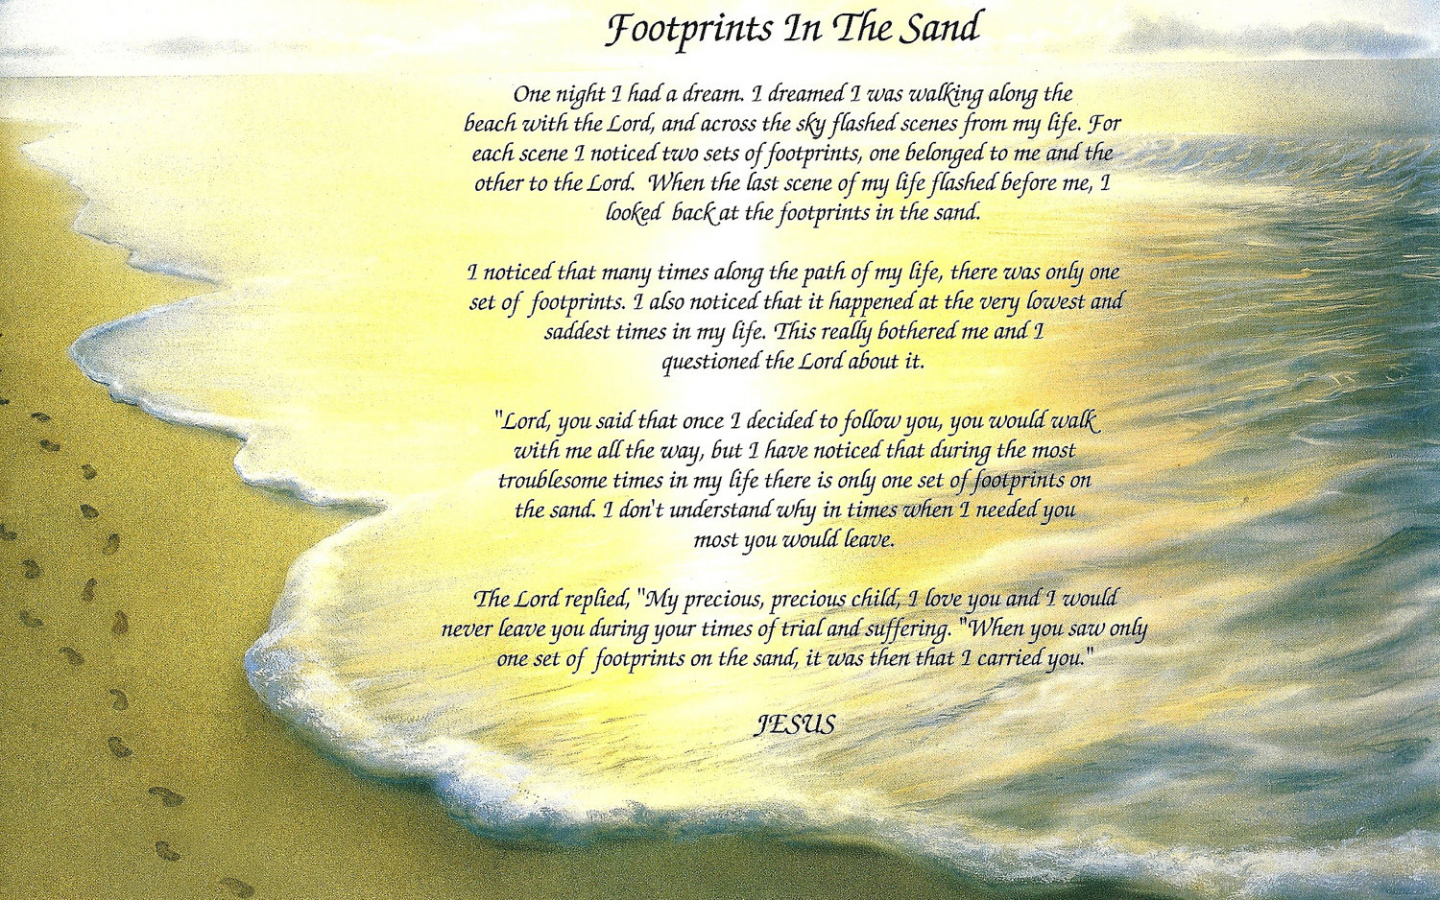 image regarding Footprints in the Sand Printable named Absolutely free down load Footprints Inside The Sand Poem Printable